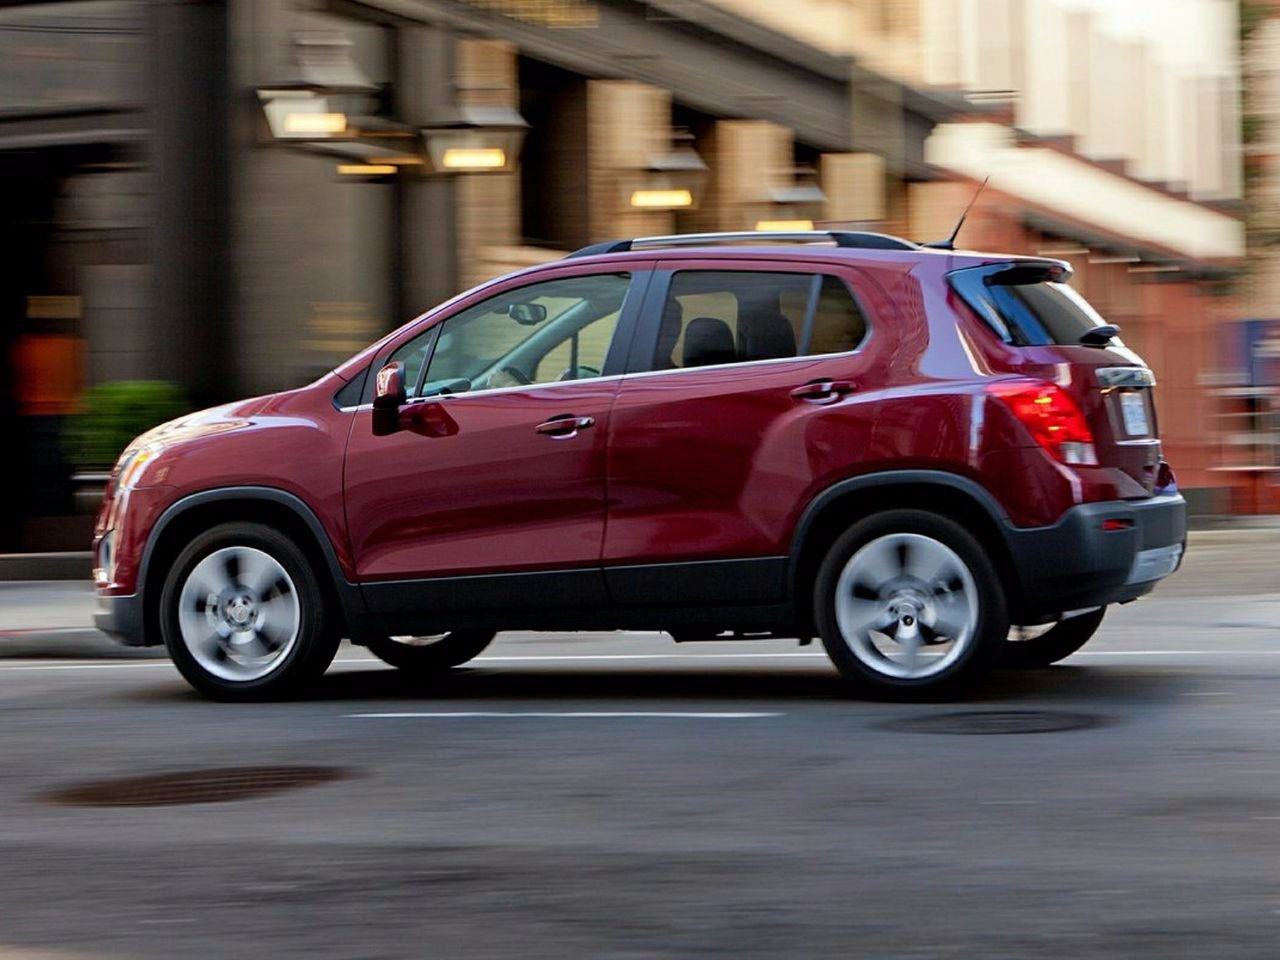 2018 Chevrolet Trax Price And Engine Noorcars Com